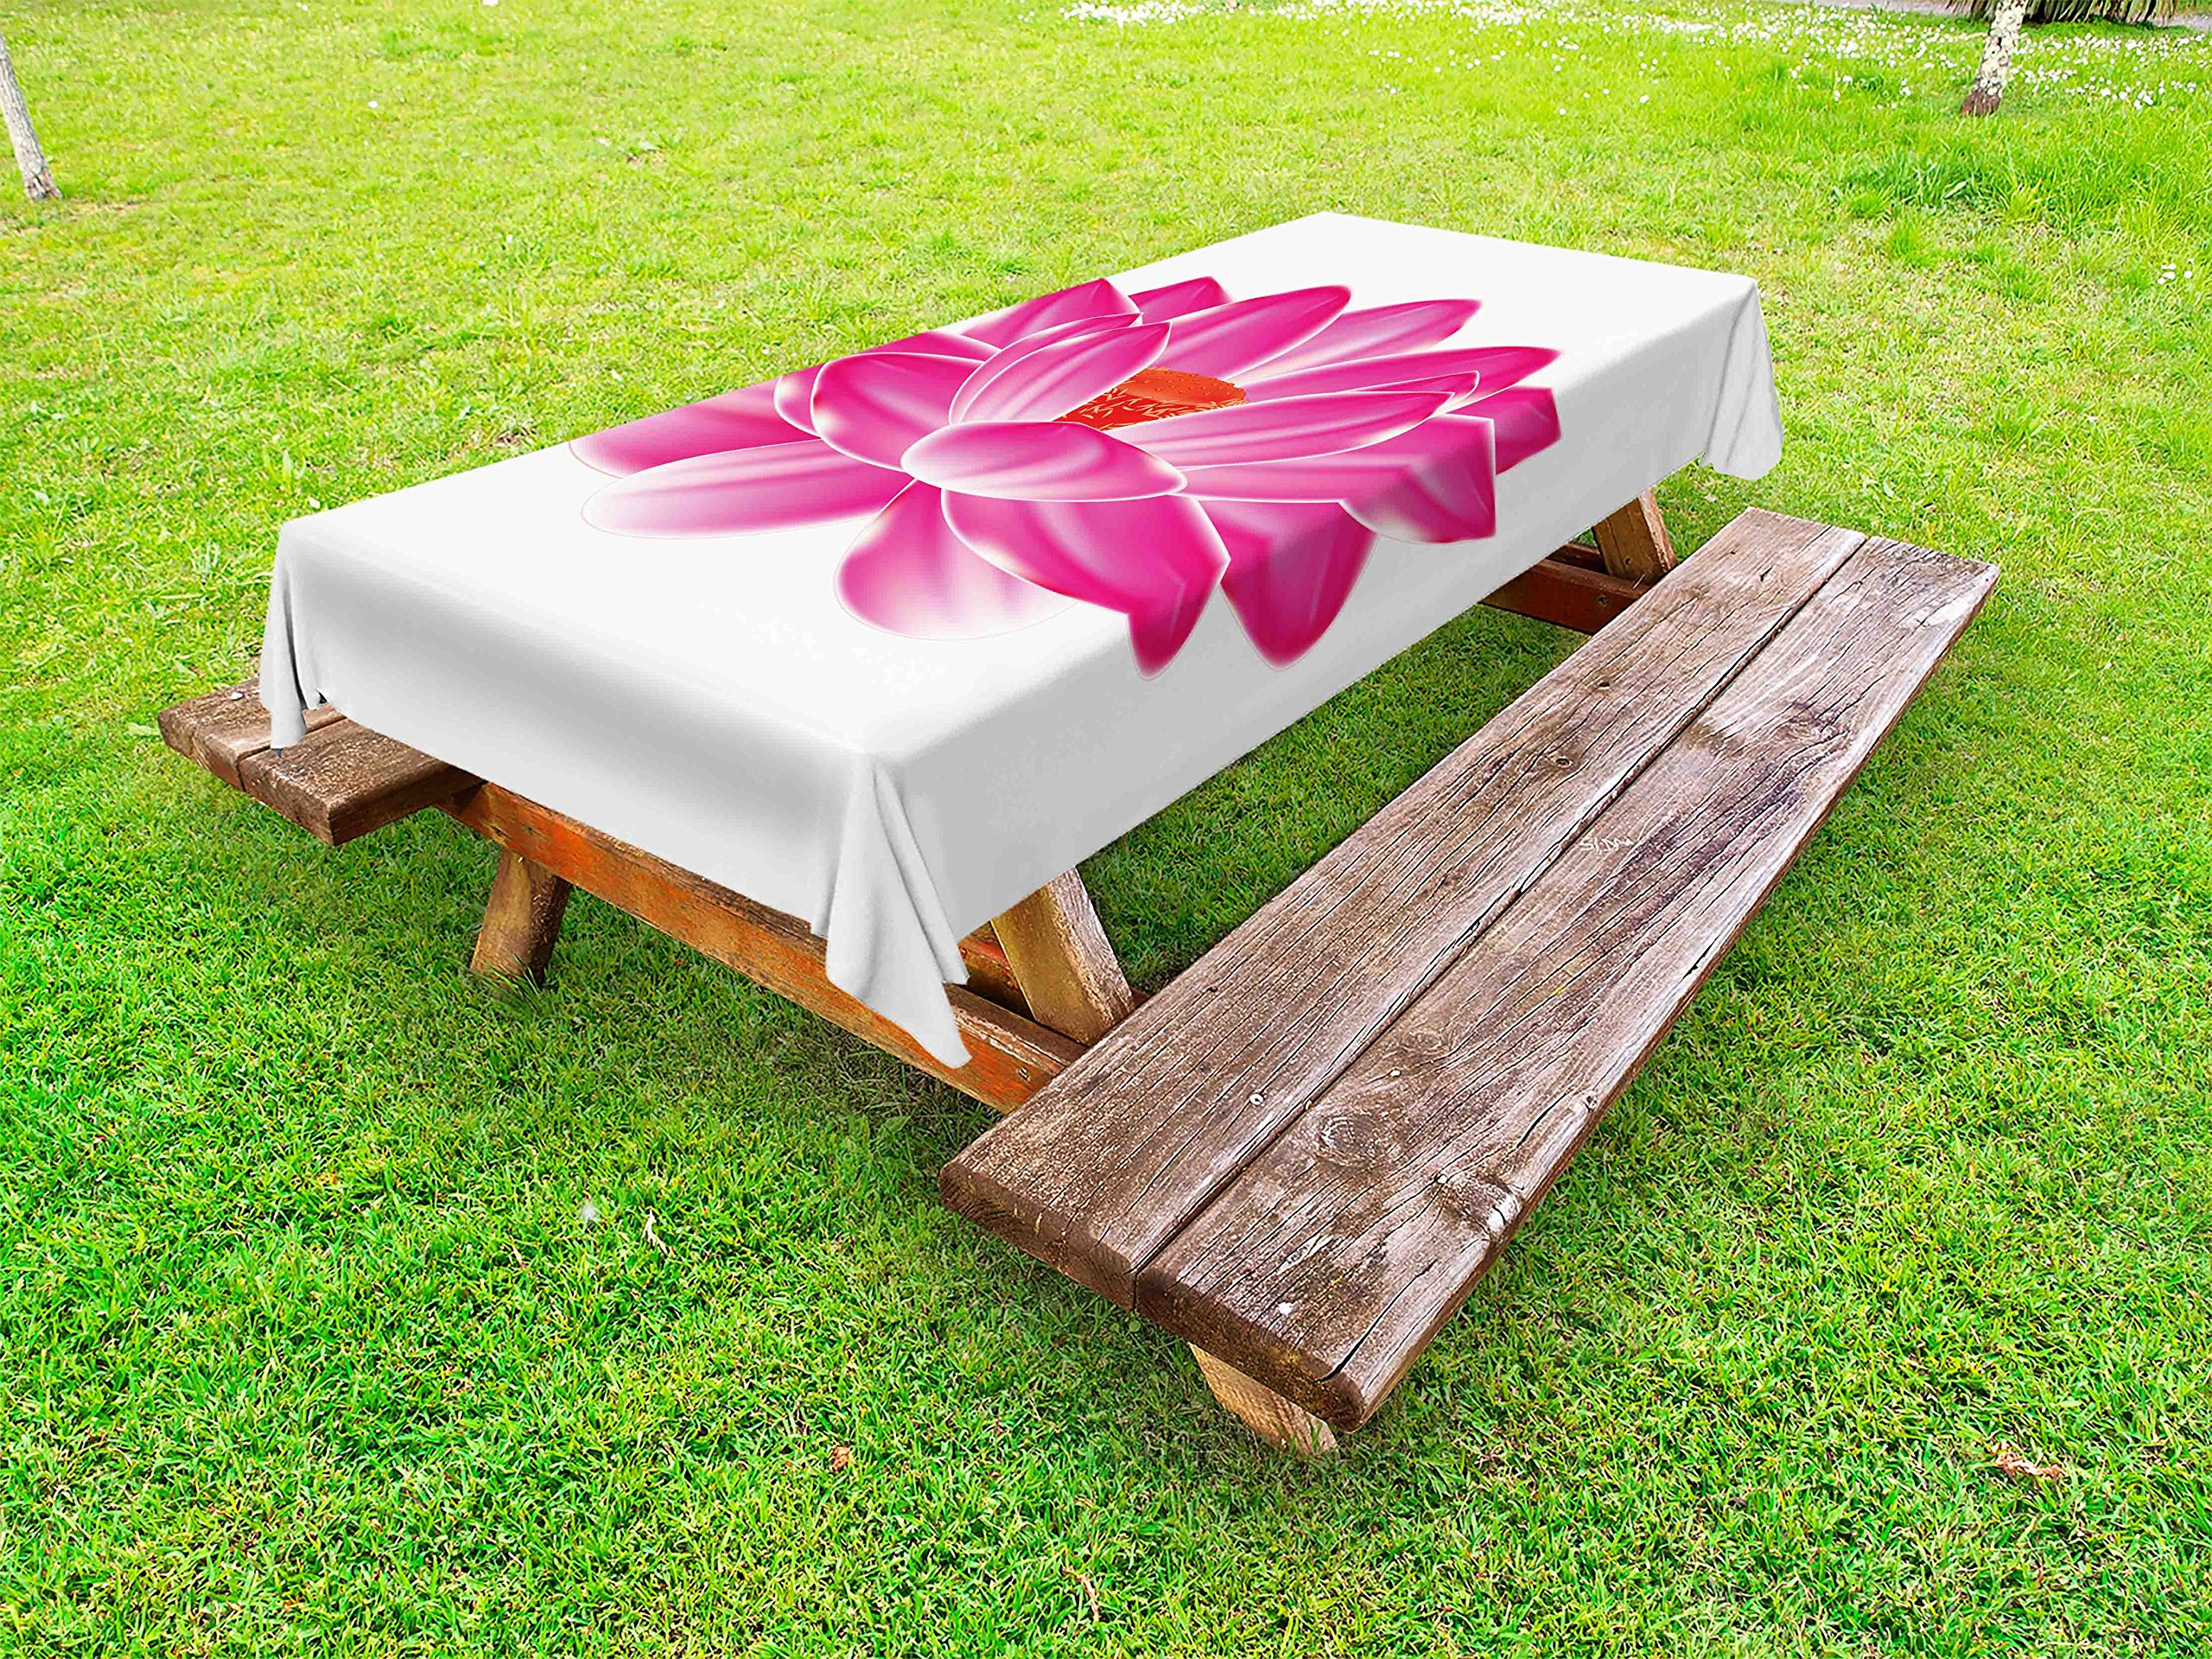 Lunarable Lotus Outdoor Tablecloth, Vibrant Lotus Flower Pattern Spa Zen Yoga Asian Balance Energy Lifestyle Artsy Image, Decorative Washable Picnic Table Cloth, 58 X 104 inches, Magenta Red by Lunarable (Image #1)